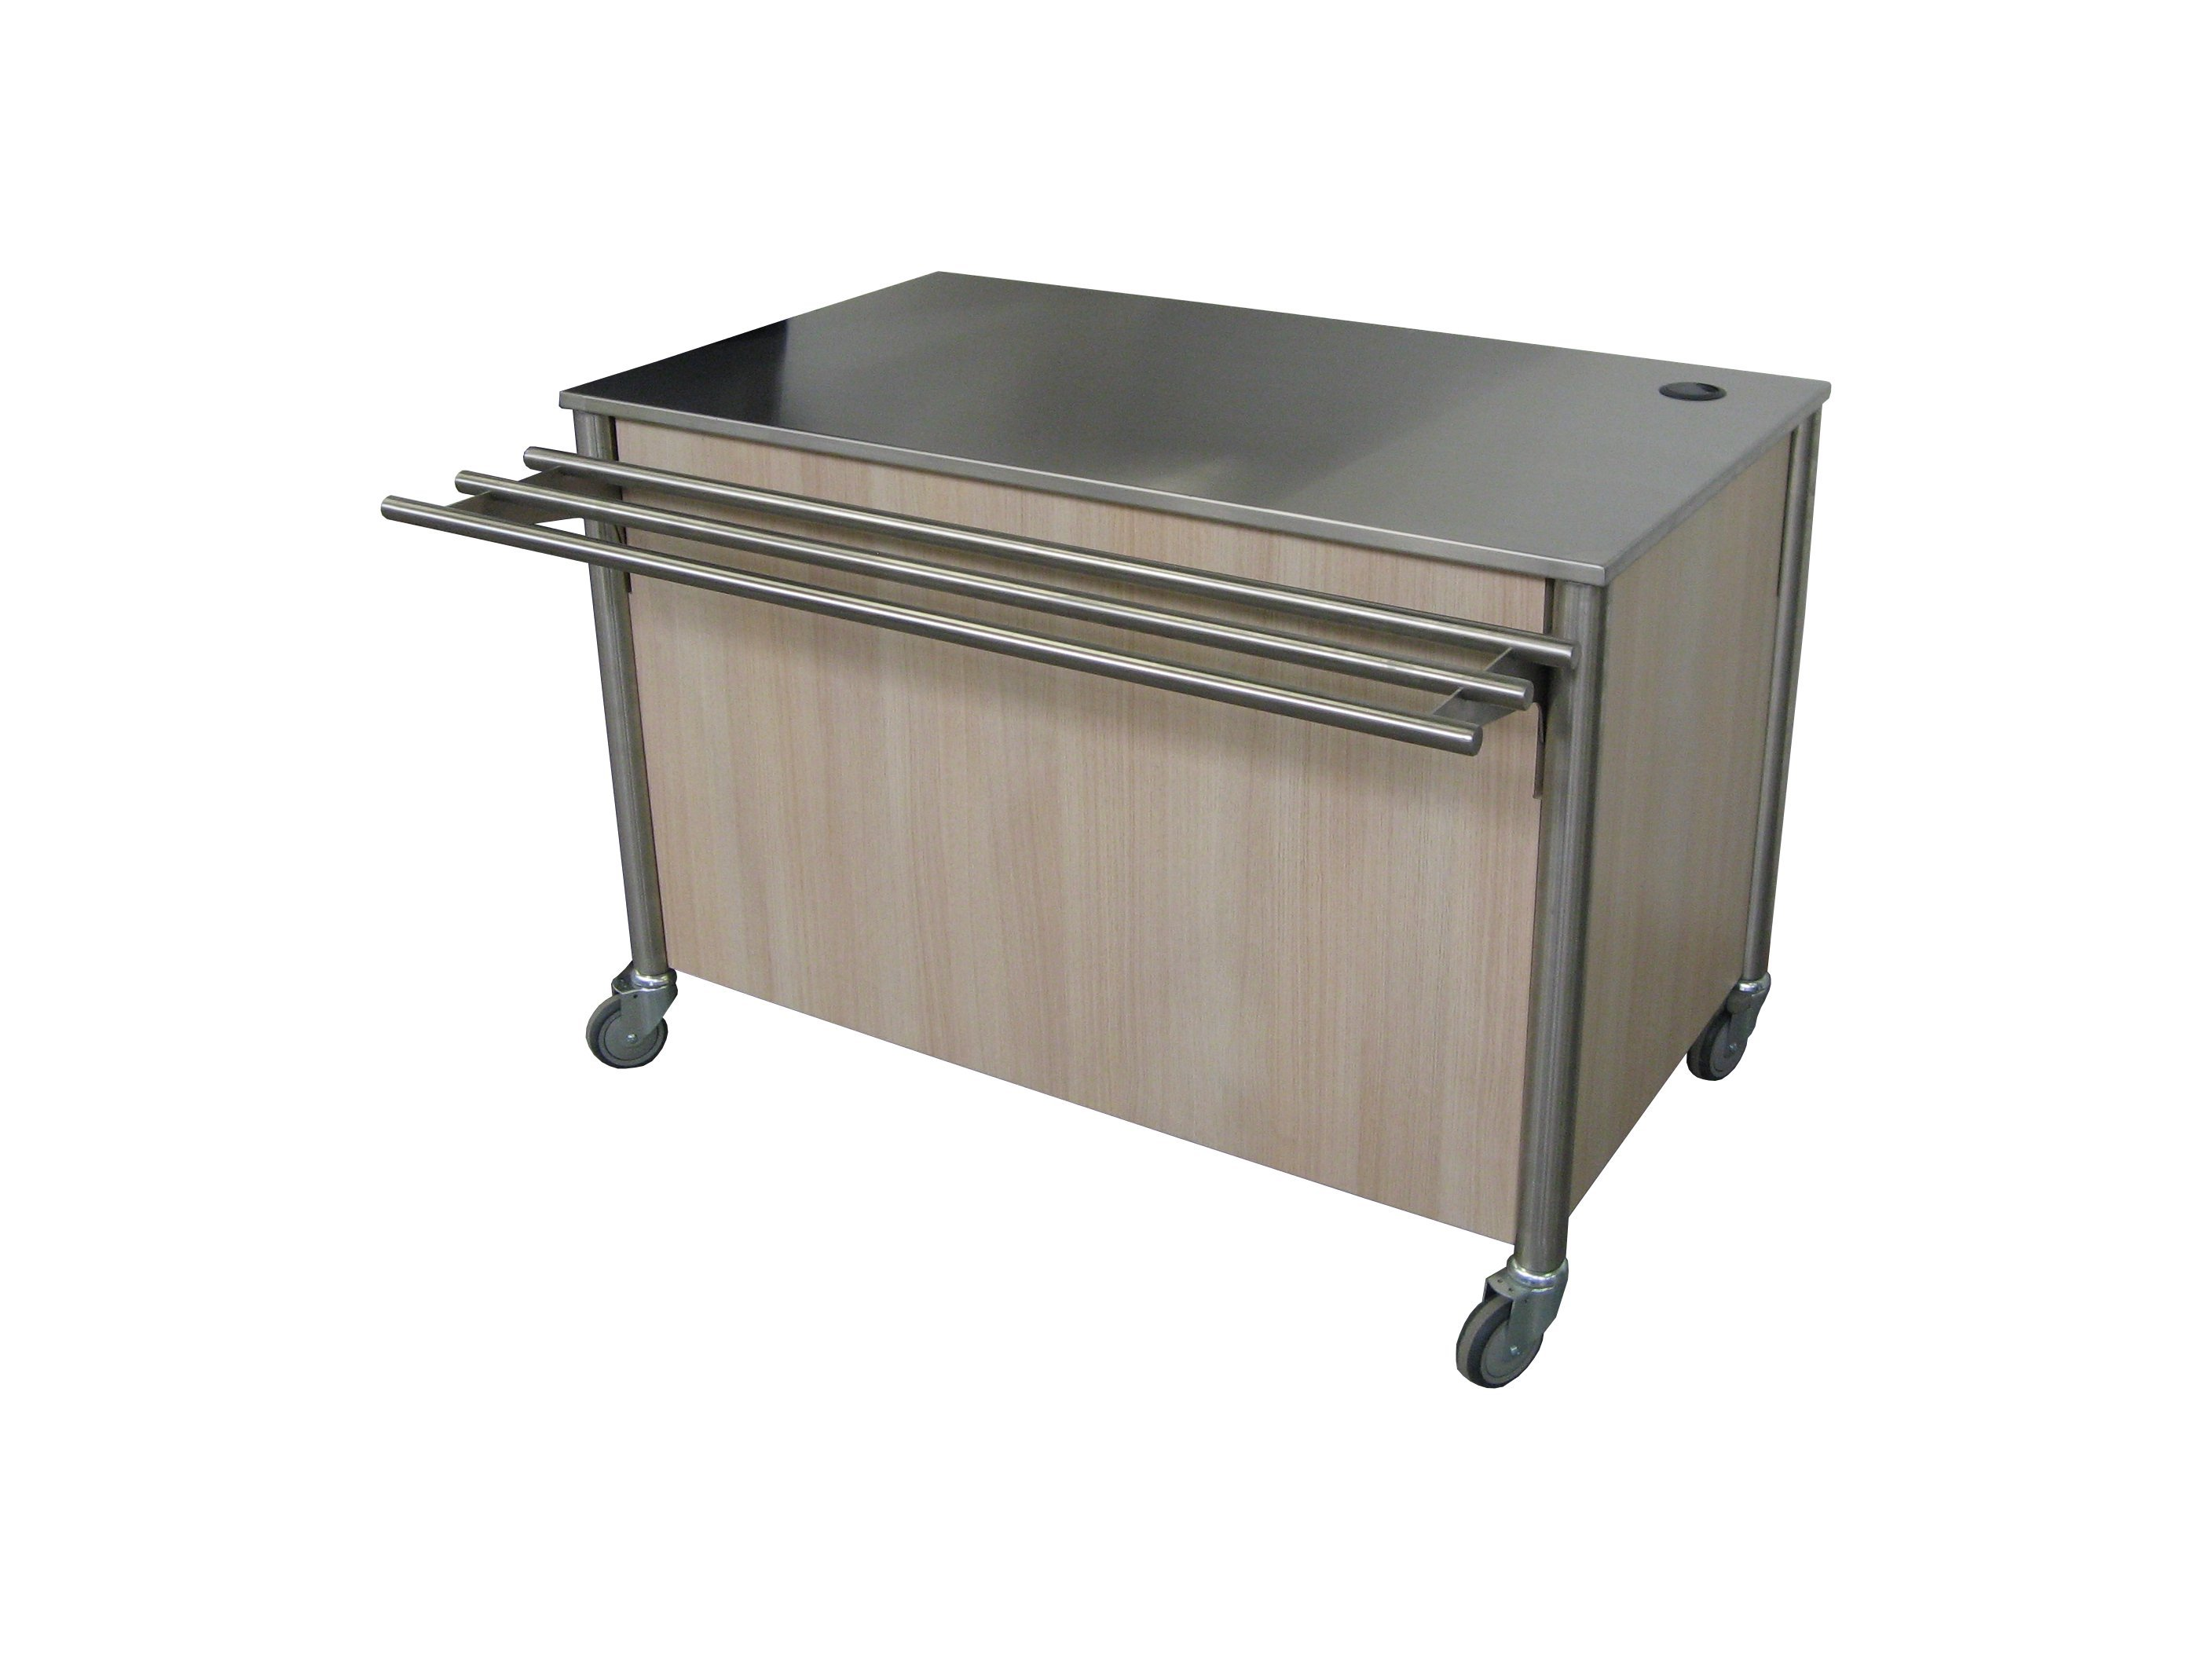 Buffet part standard without trayrail 1400x700x900